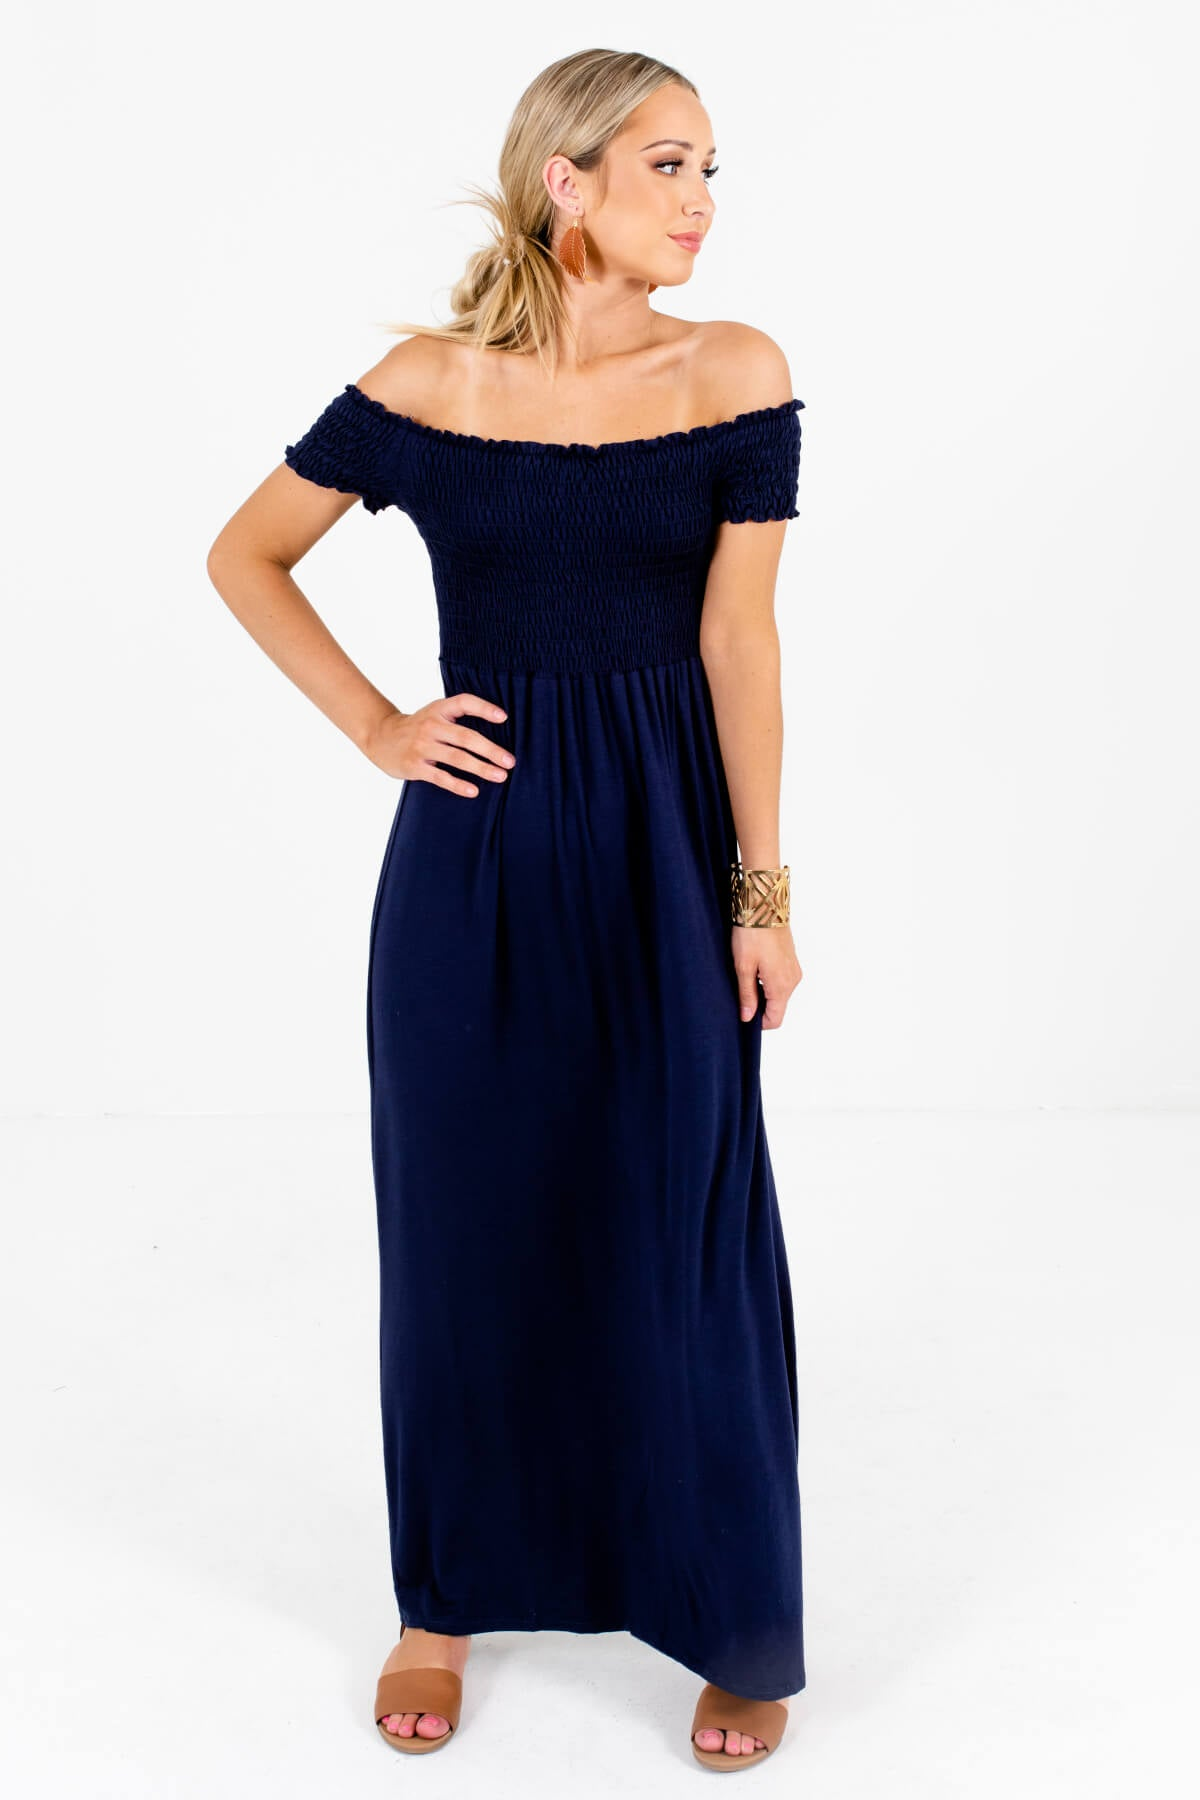 Navy Blue Optional Off Shoulder Style Boutique Maxi Dresses for Women